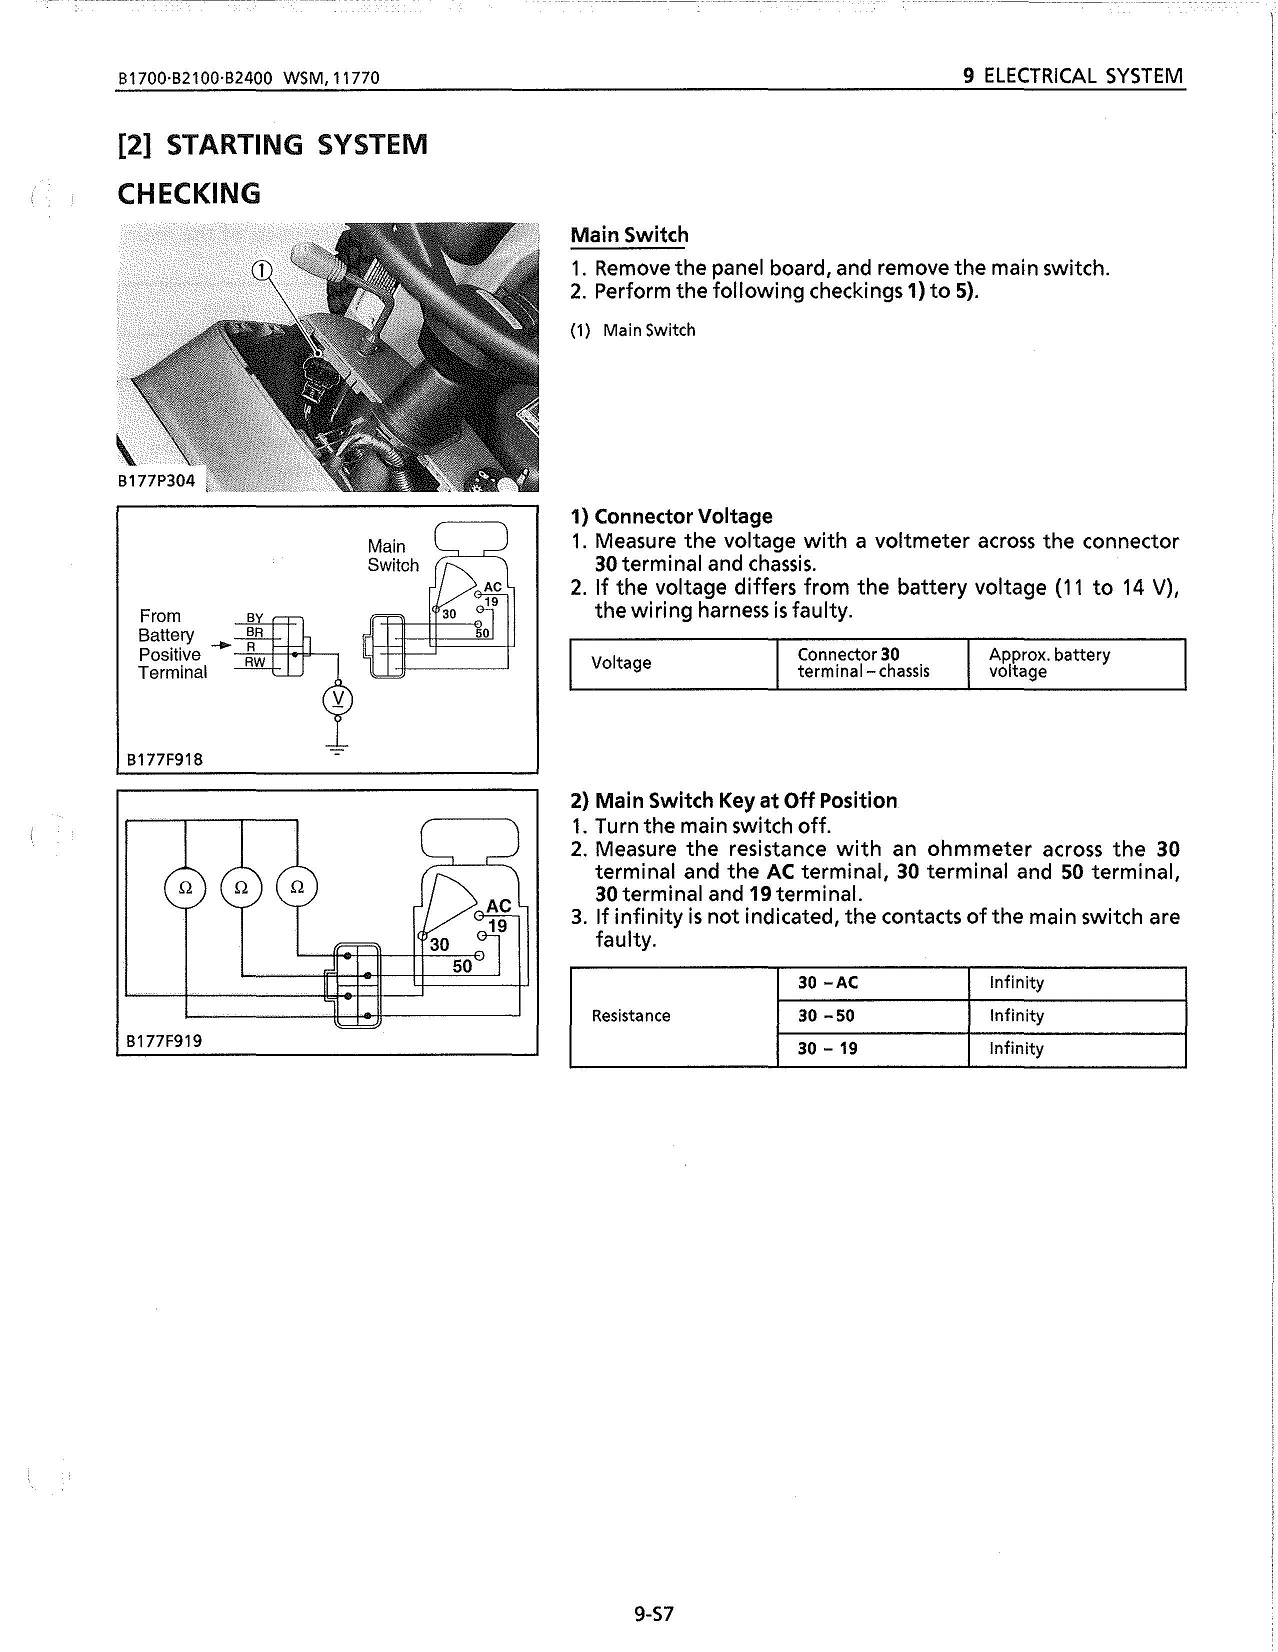 Tractor Alternator Wiring Diagram Related Keywords Suggestions